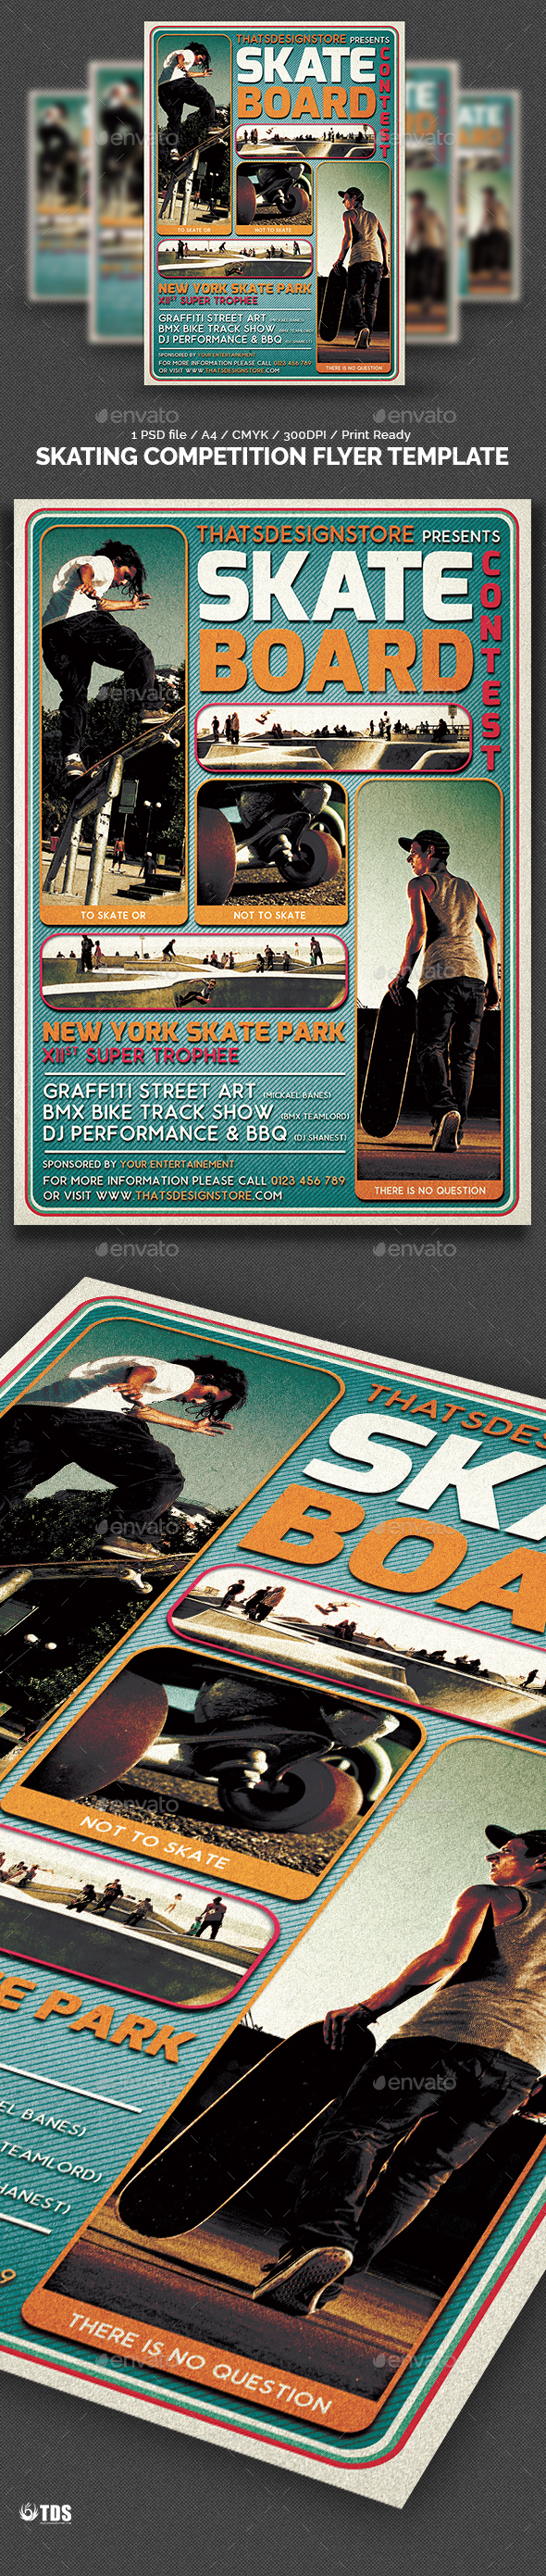 Skating Competition Flyer Template by lou606 – Competition Flyer Template